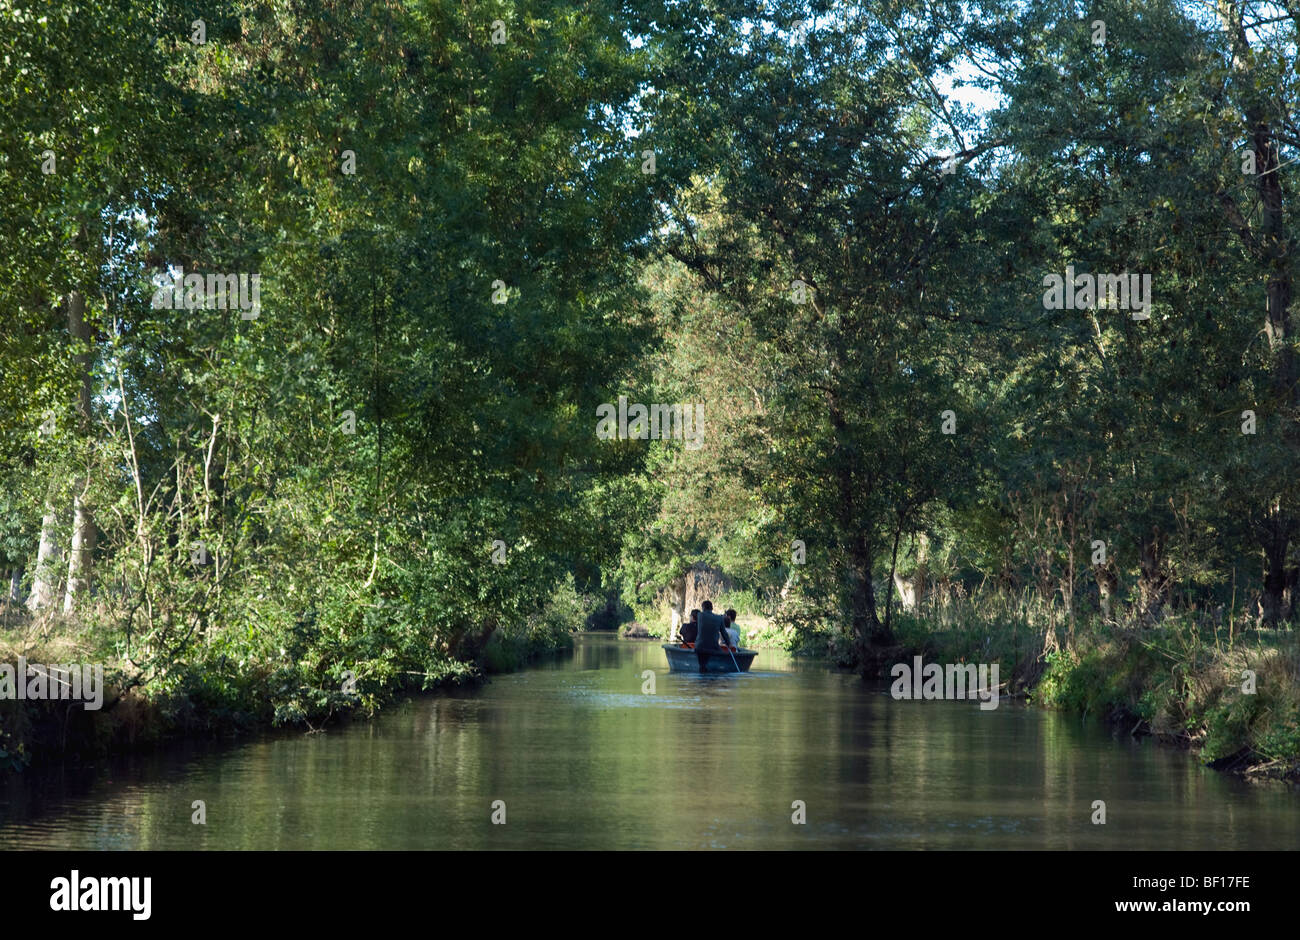 Gentle boating in the quiet waters of France's labyrinthine Marais Poitevin - Stock Image